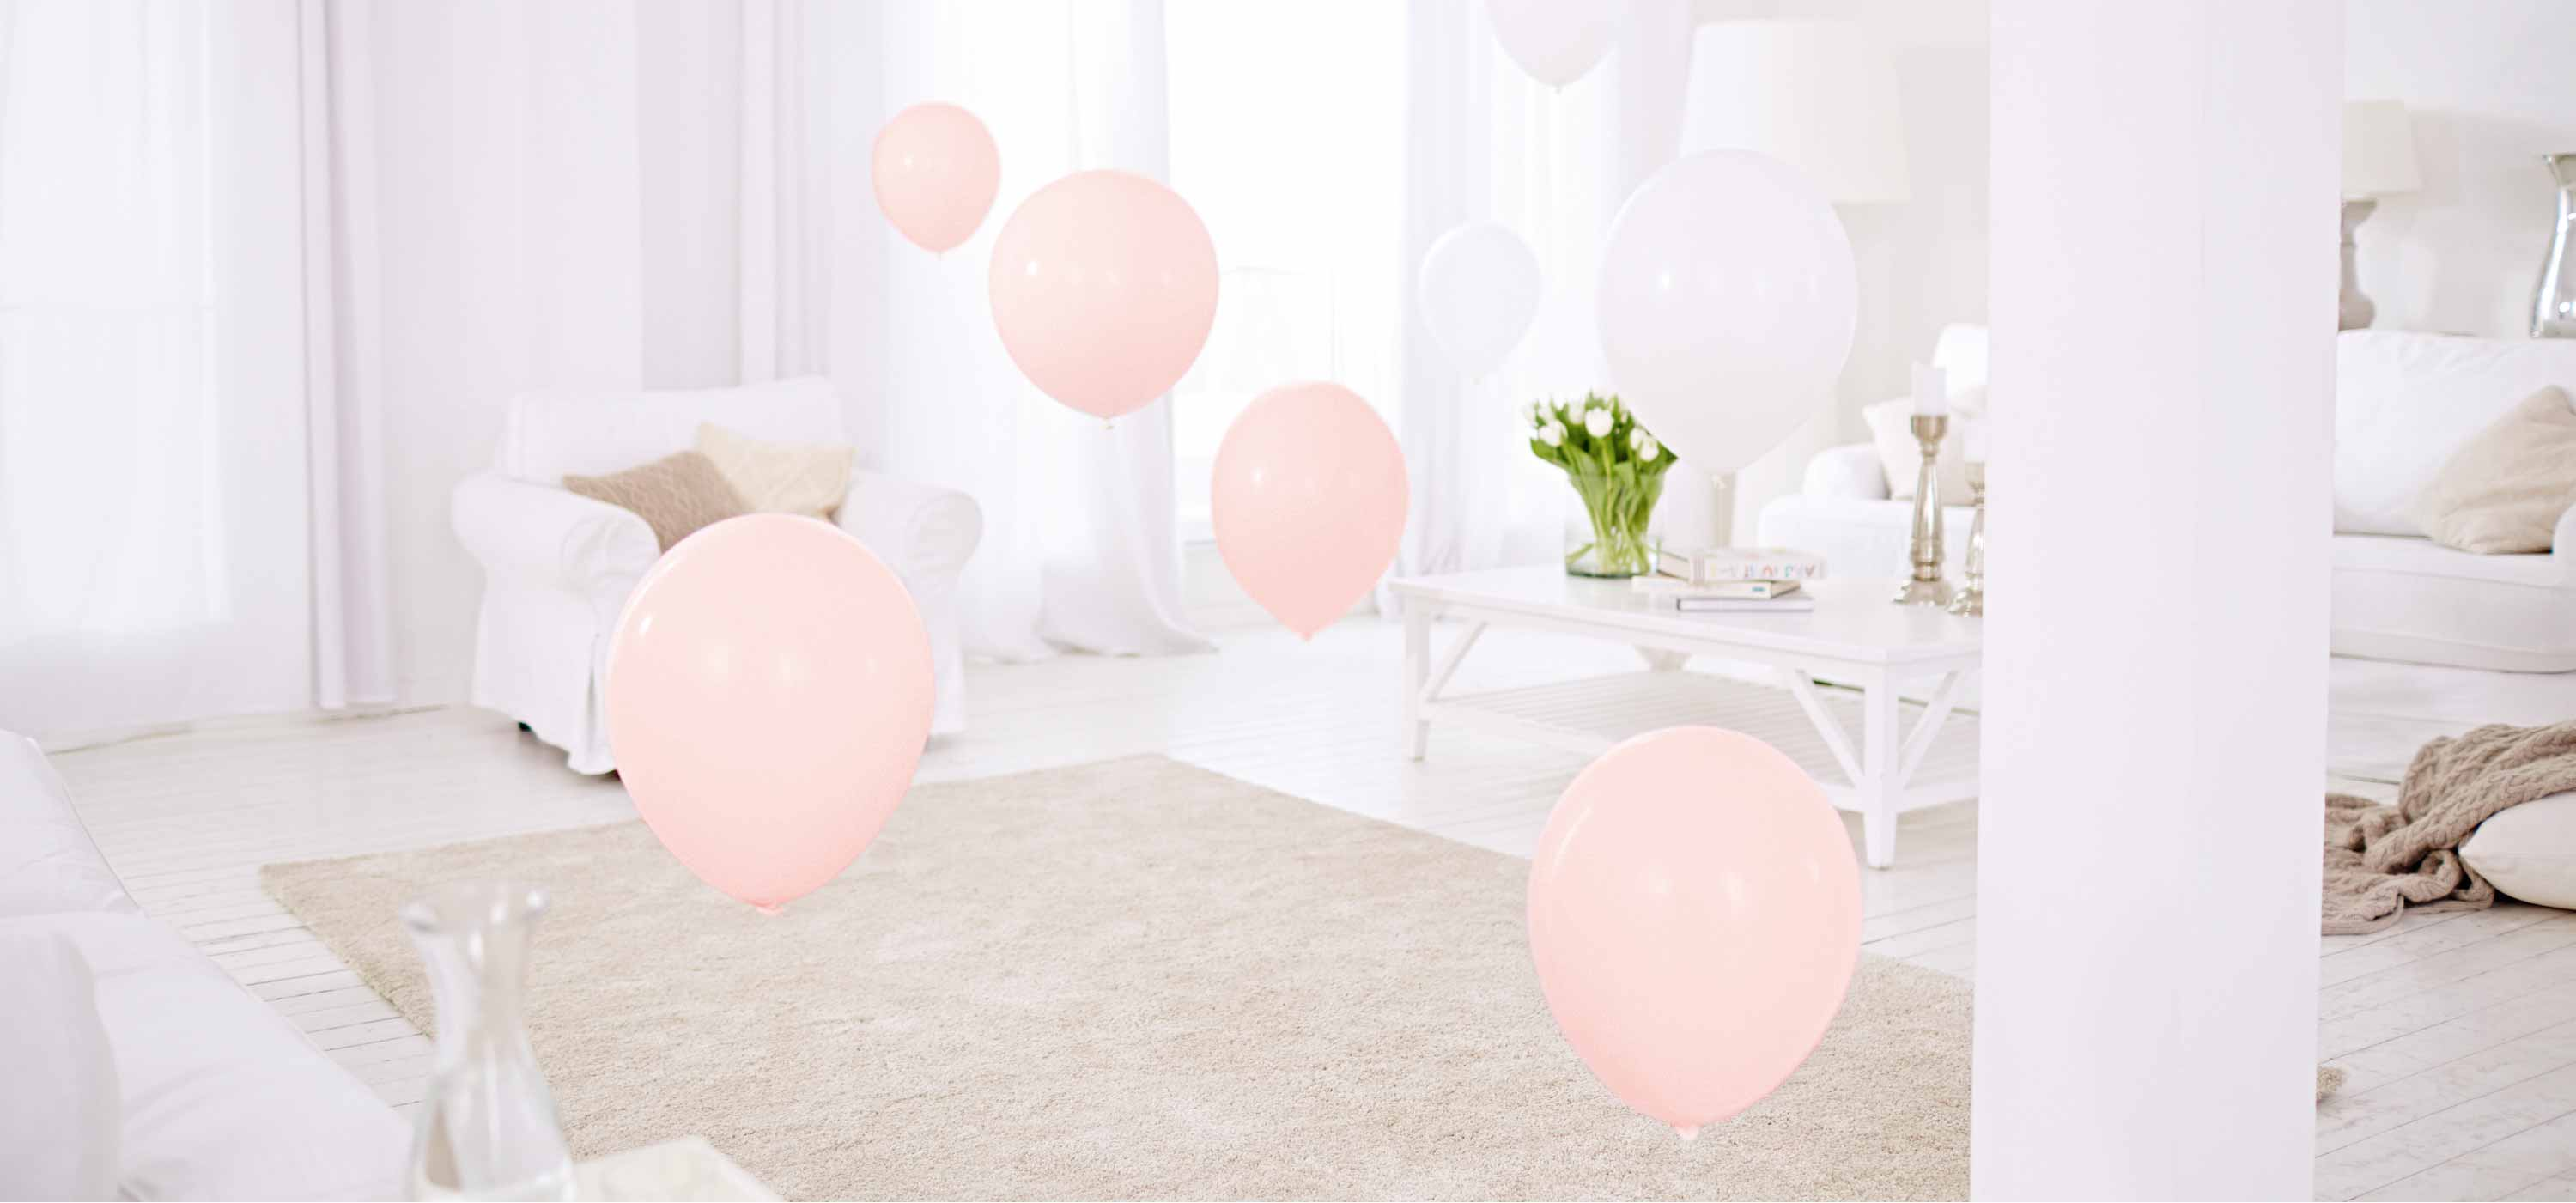 Balloons fly through a room to symbolize the new ease of hearing.